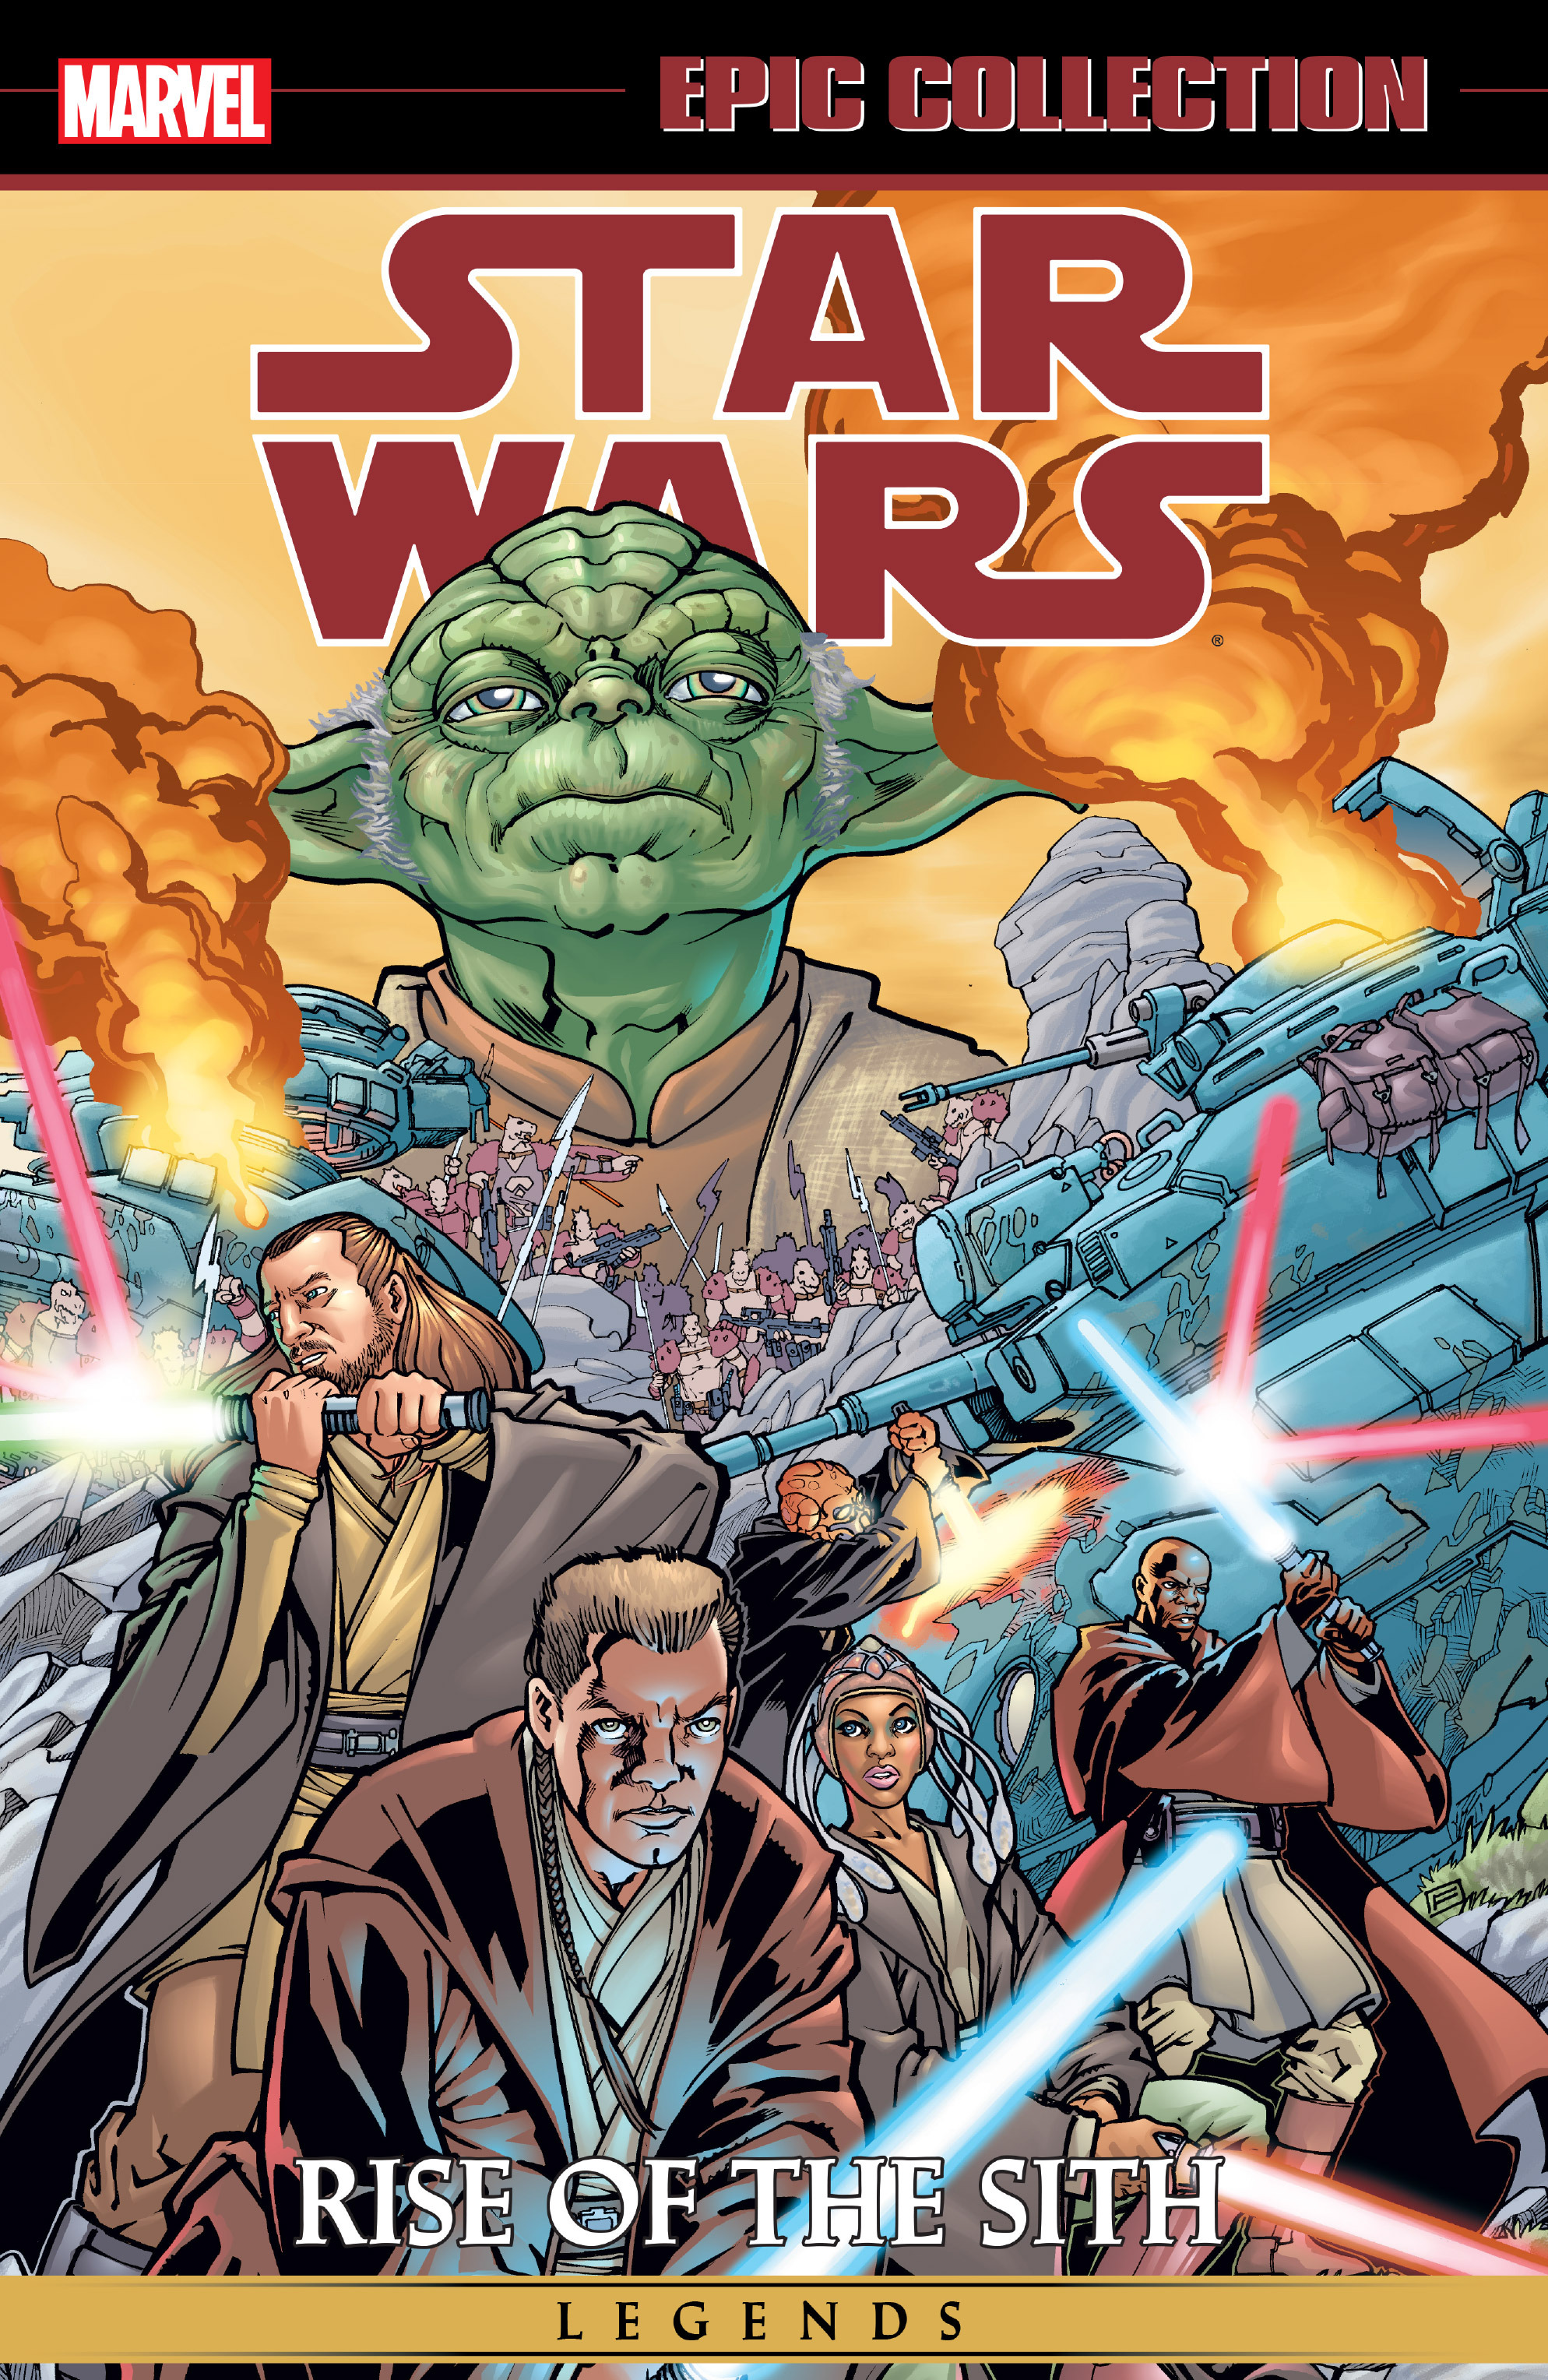 File:Star Wars Legends Epic Collection Rise of the Sith Vol 1 1.jpg